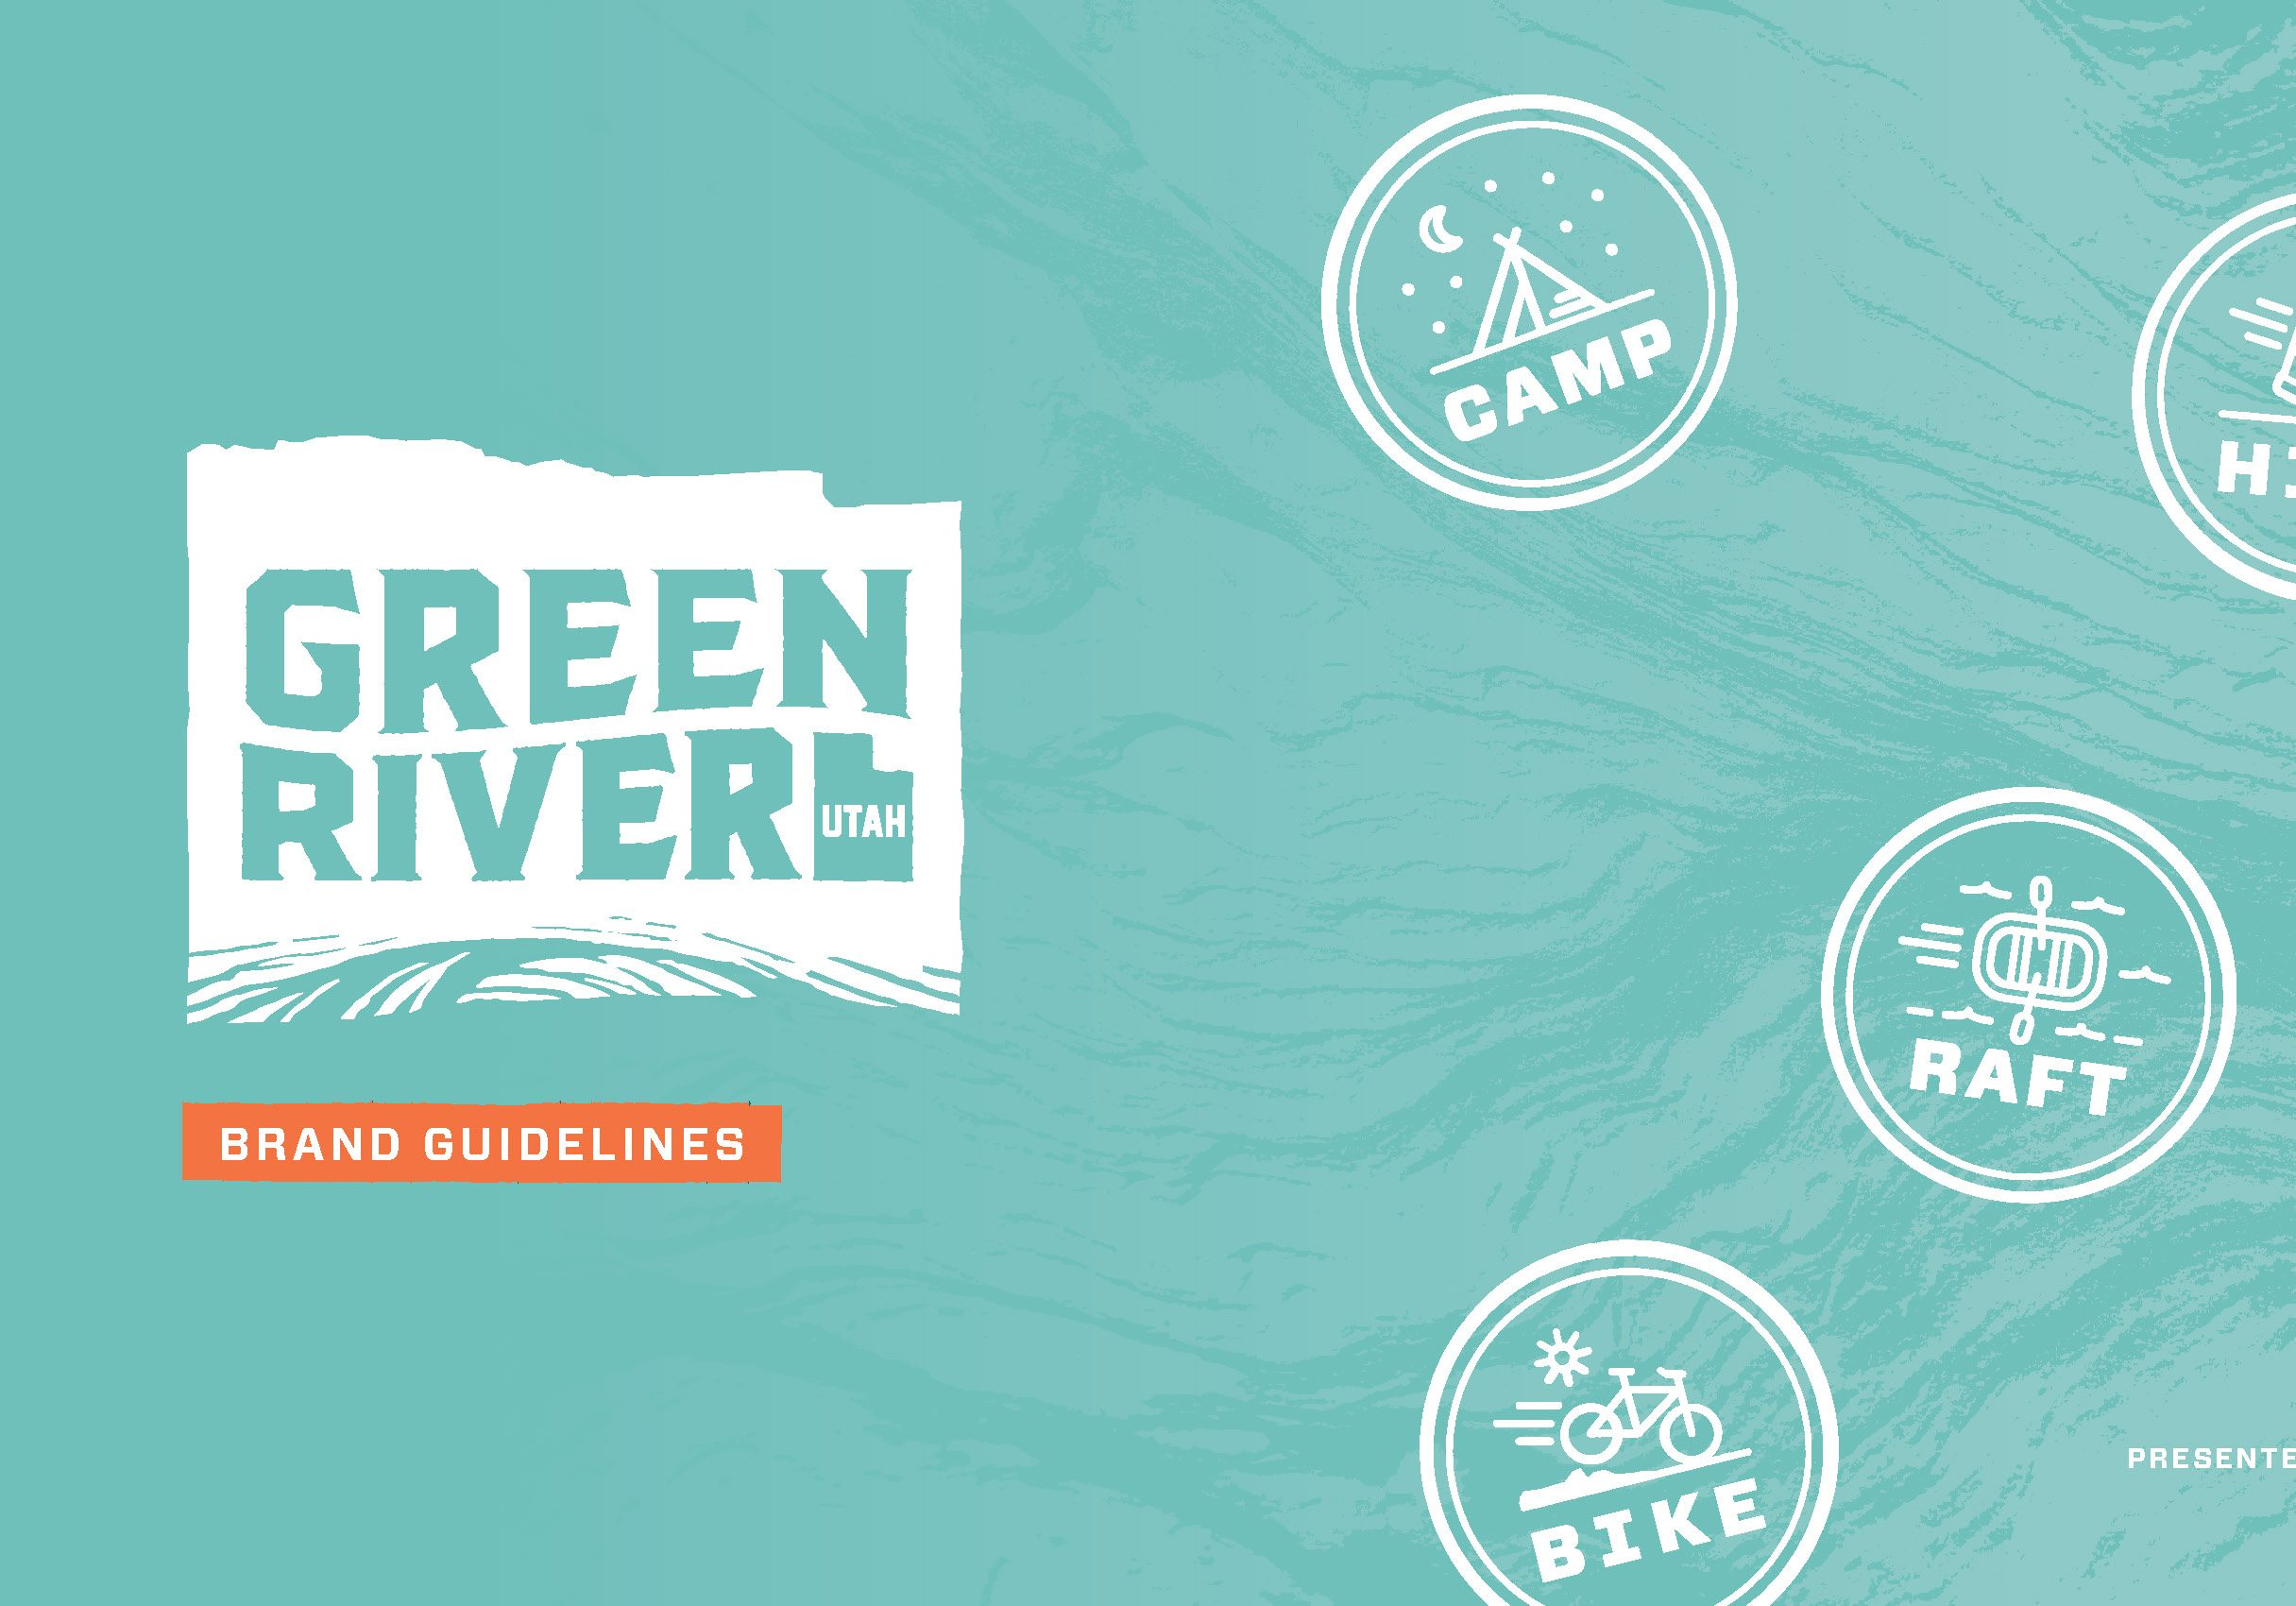 HUB worked with Green River citizens to create a new brand for the city